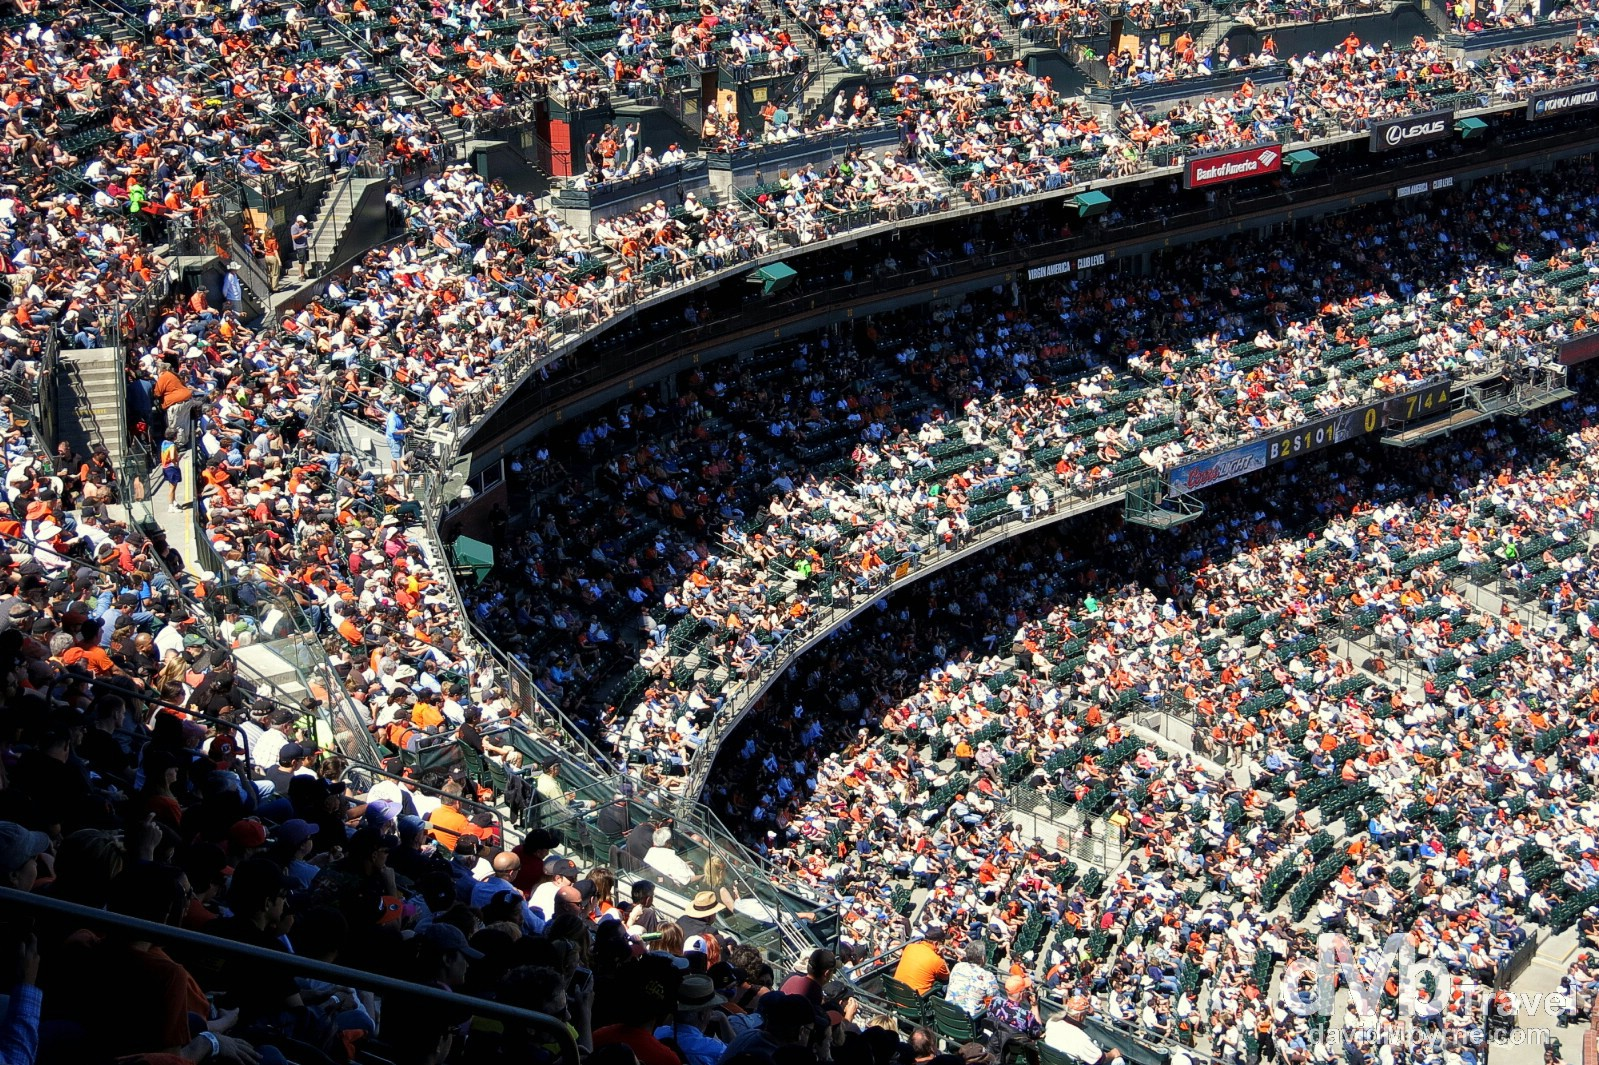 Crowds in AT&T Park, San Francisco, California, USA. April 10th 2013.